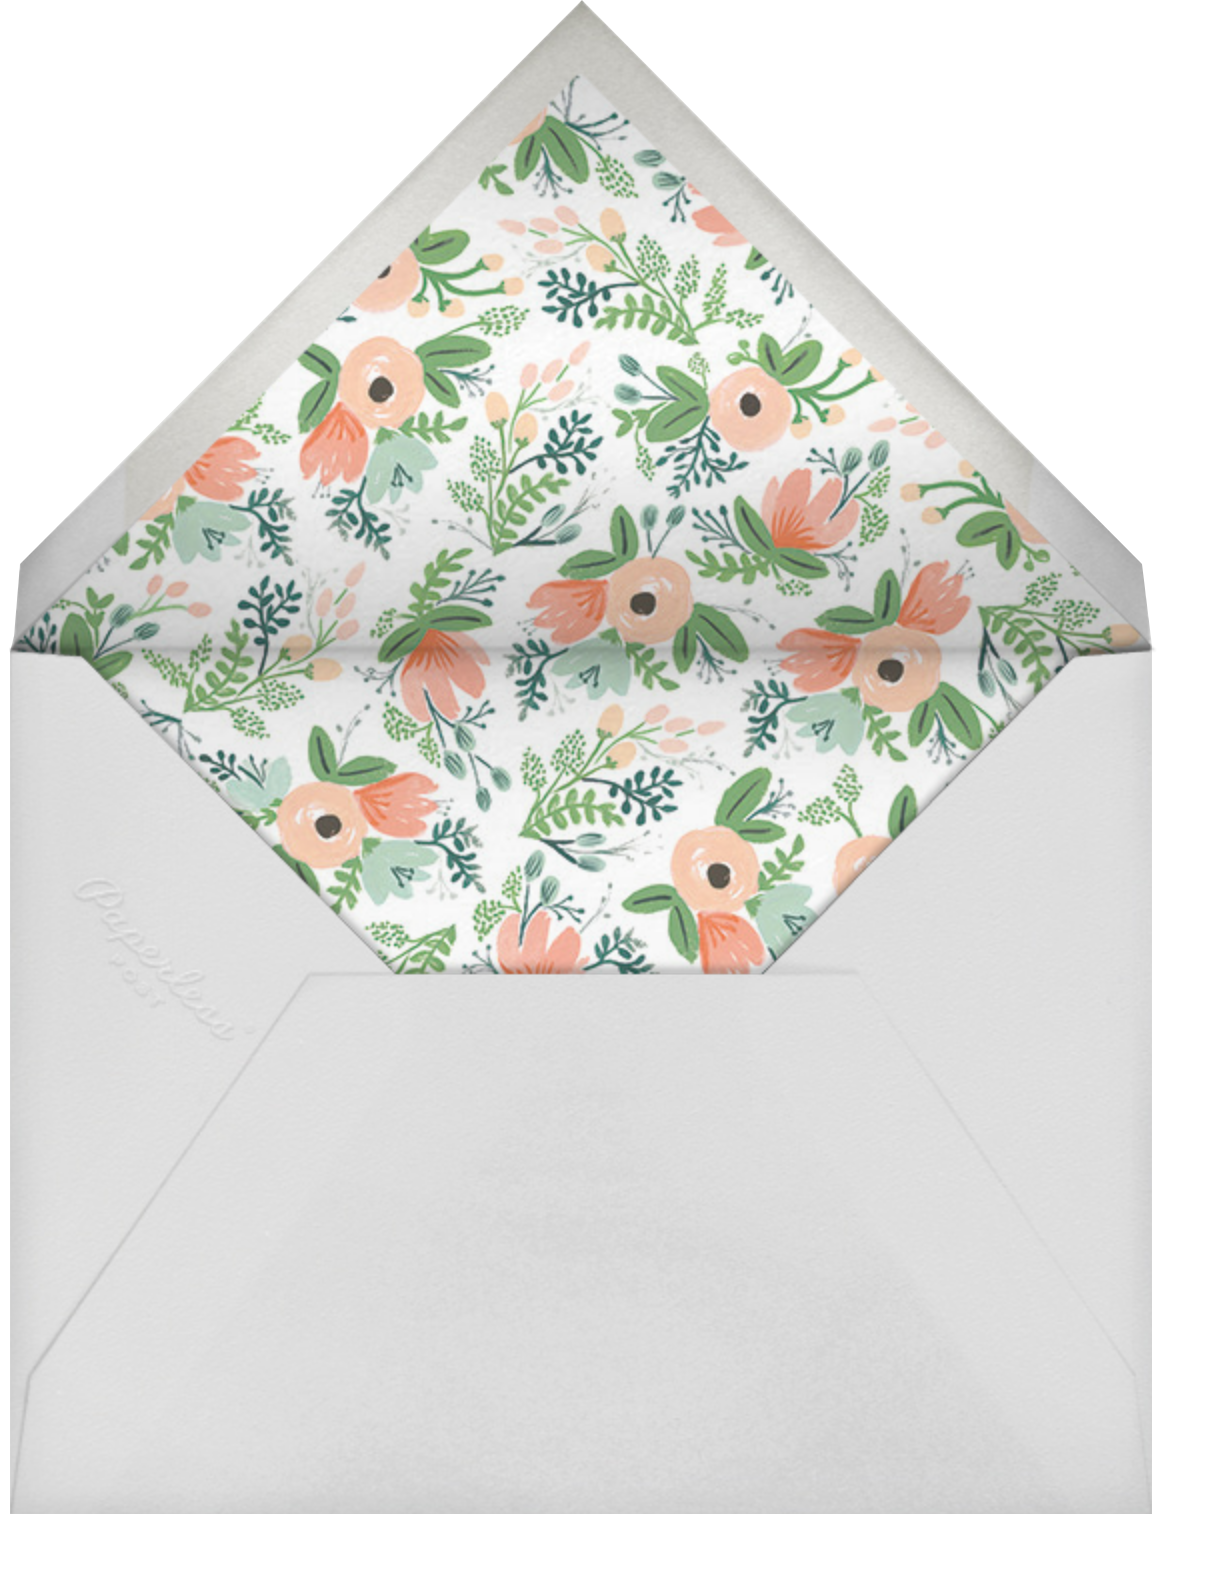 Wrapped in Wildflowers Suite (Invitation) - Rifle Paper Co. - All - envelope back